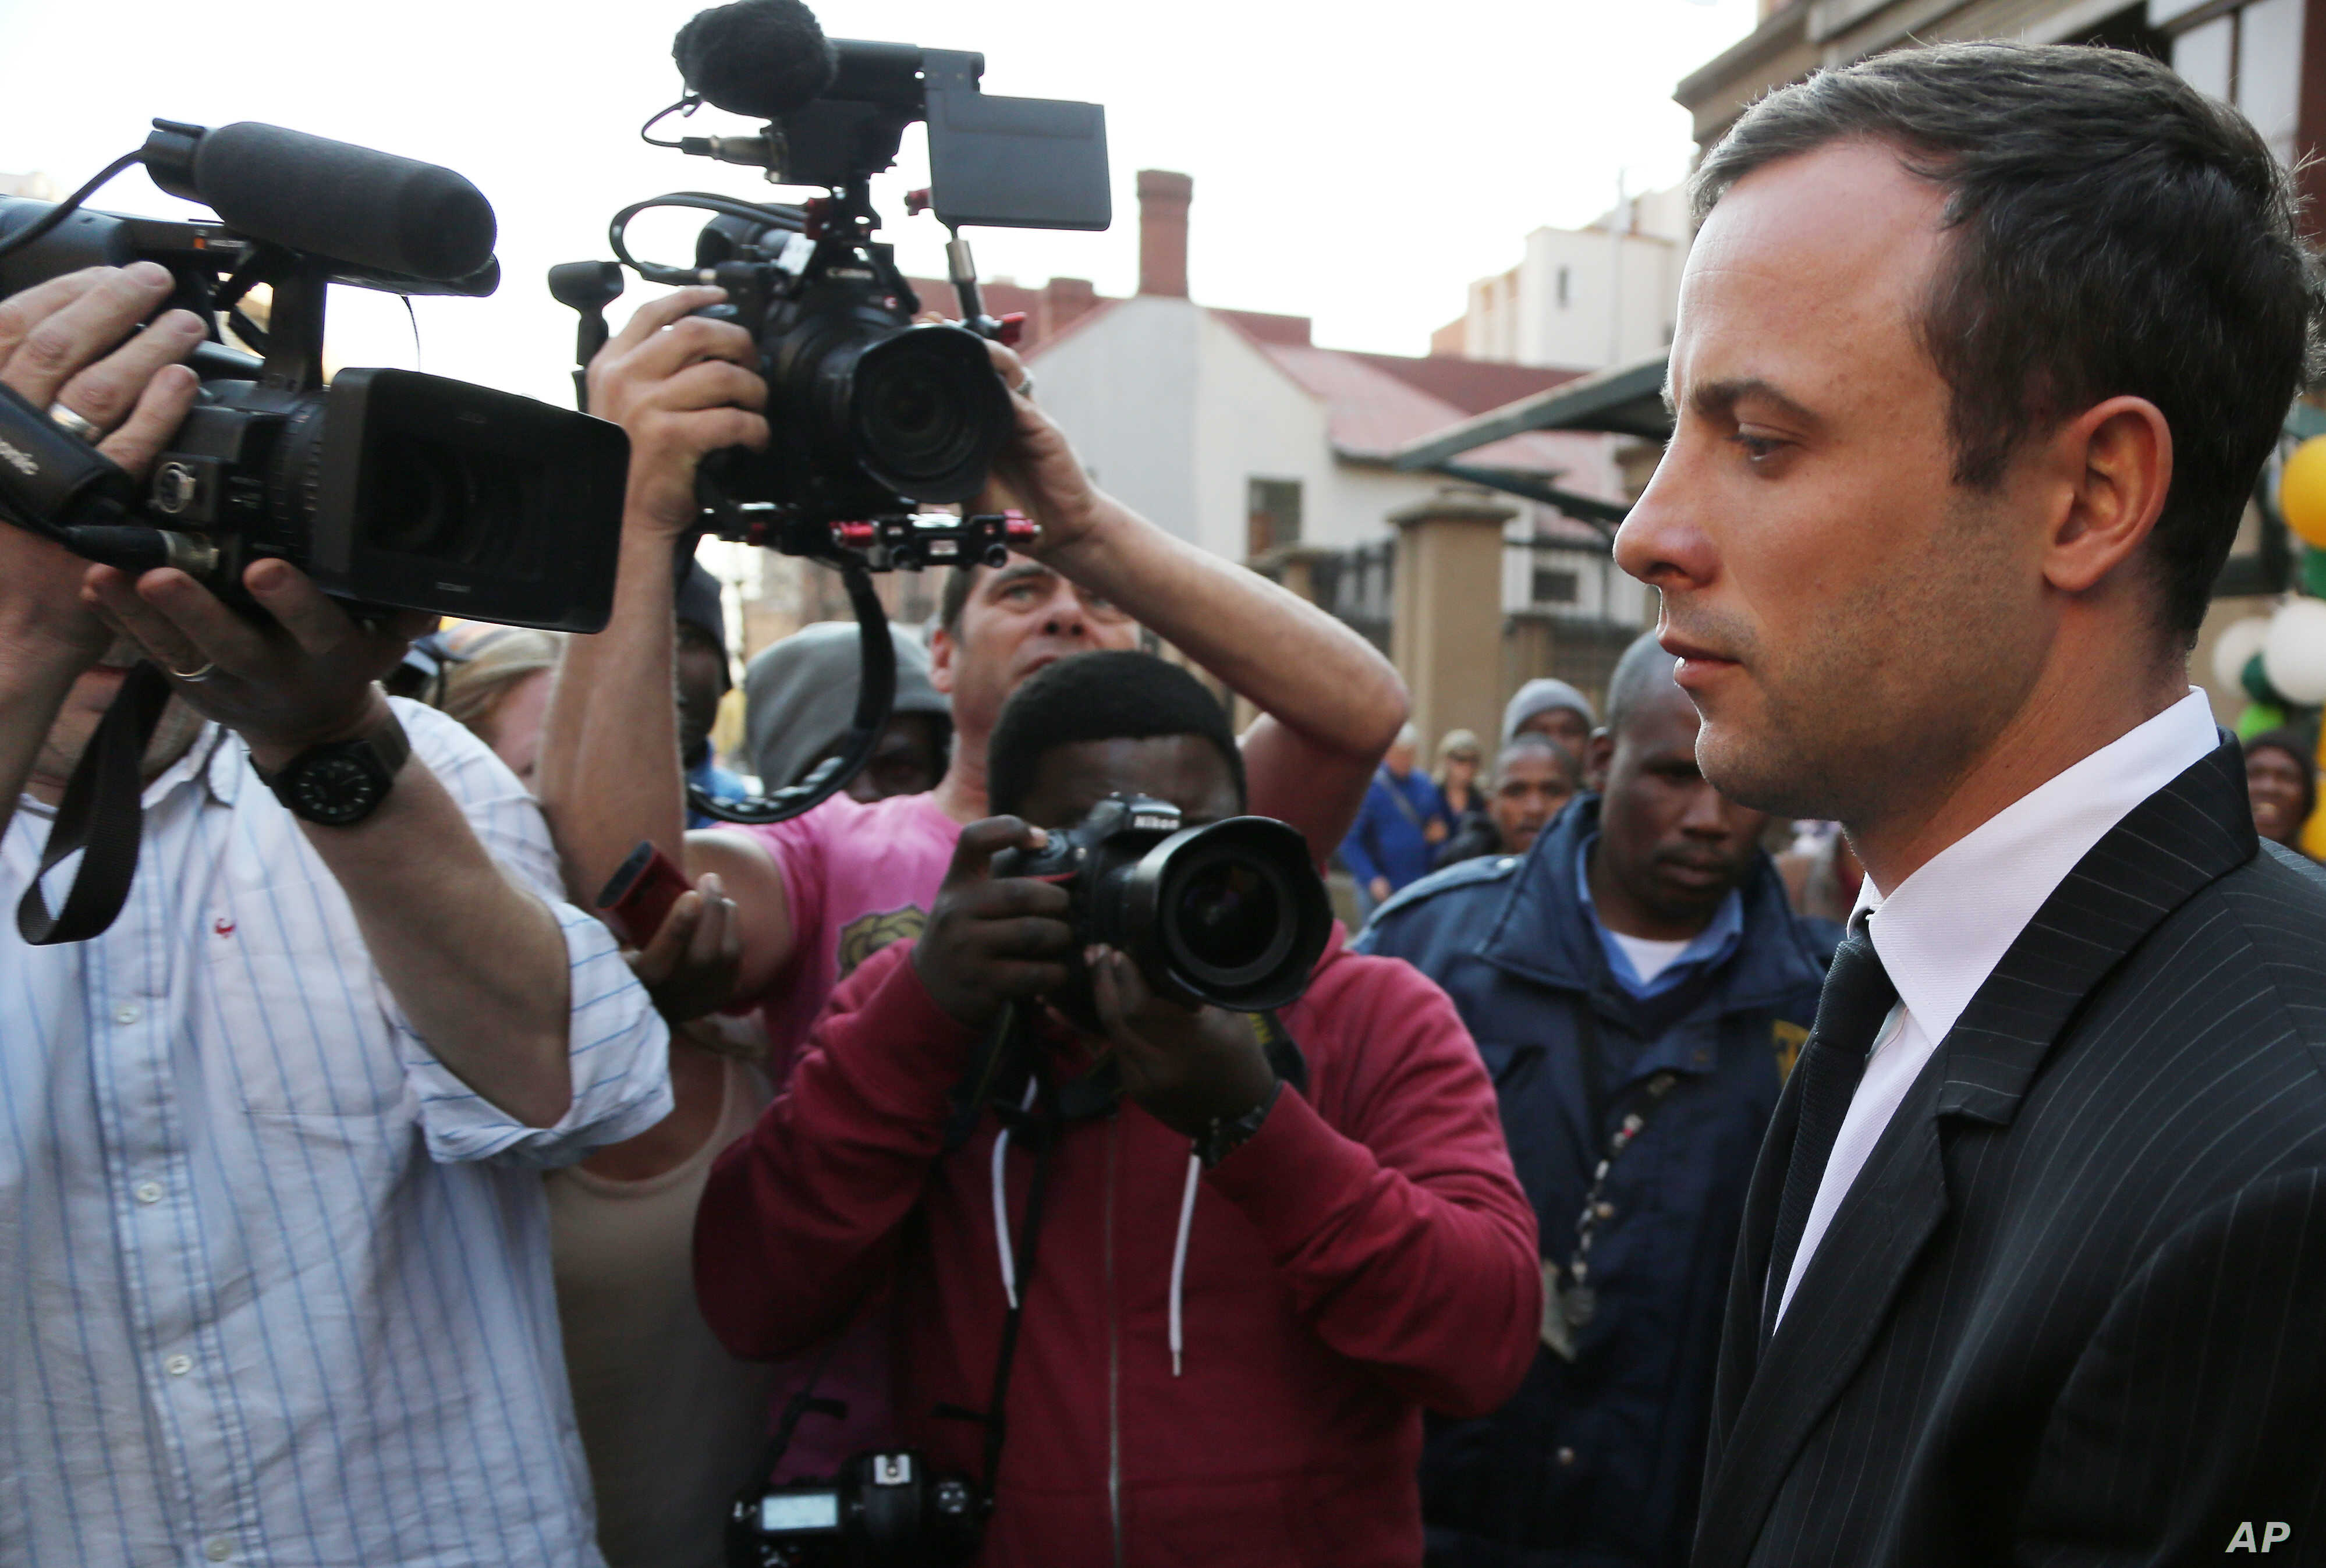 S  Africa's Criminal Legal System on Trial With Pistorius